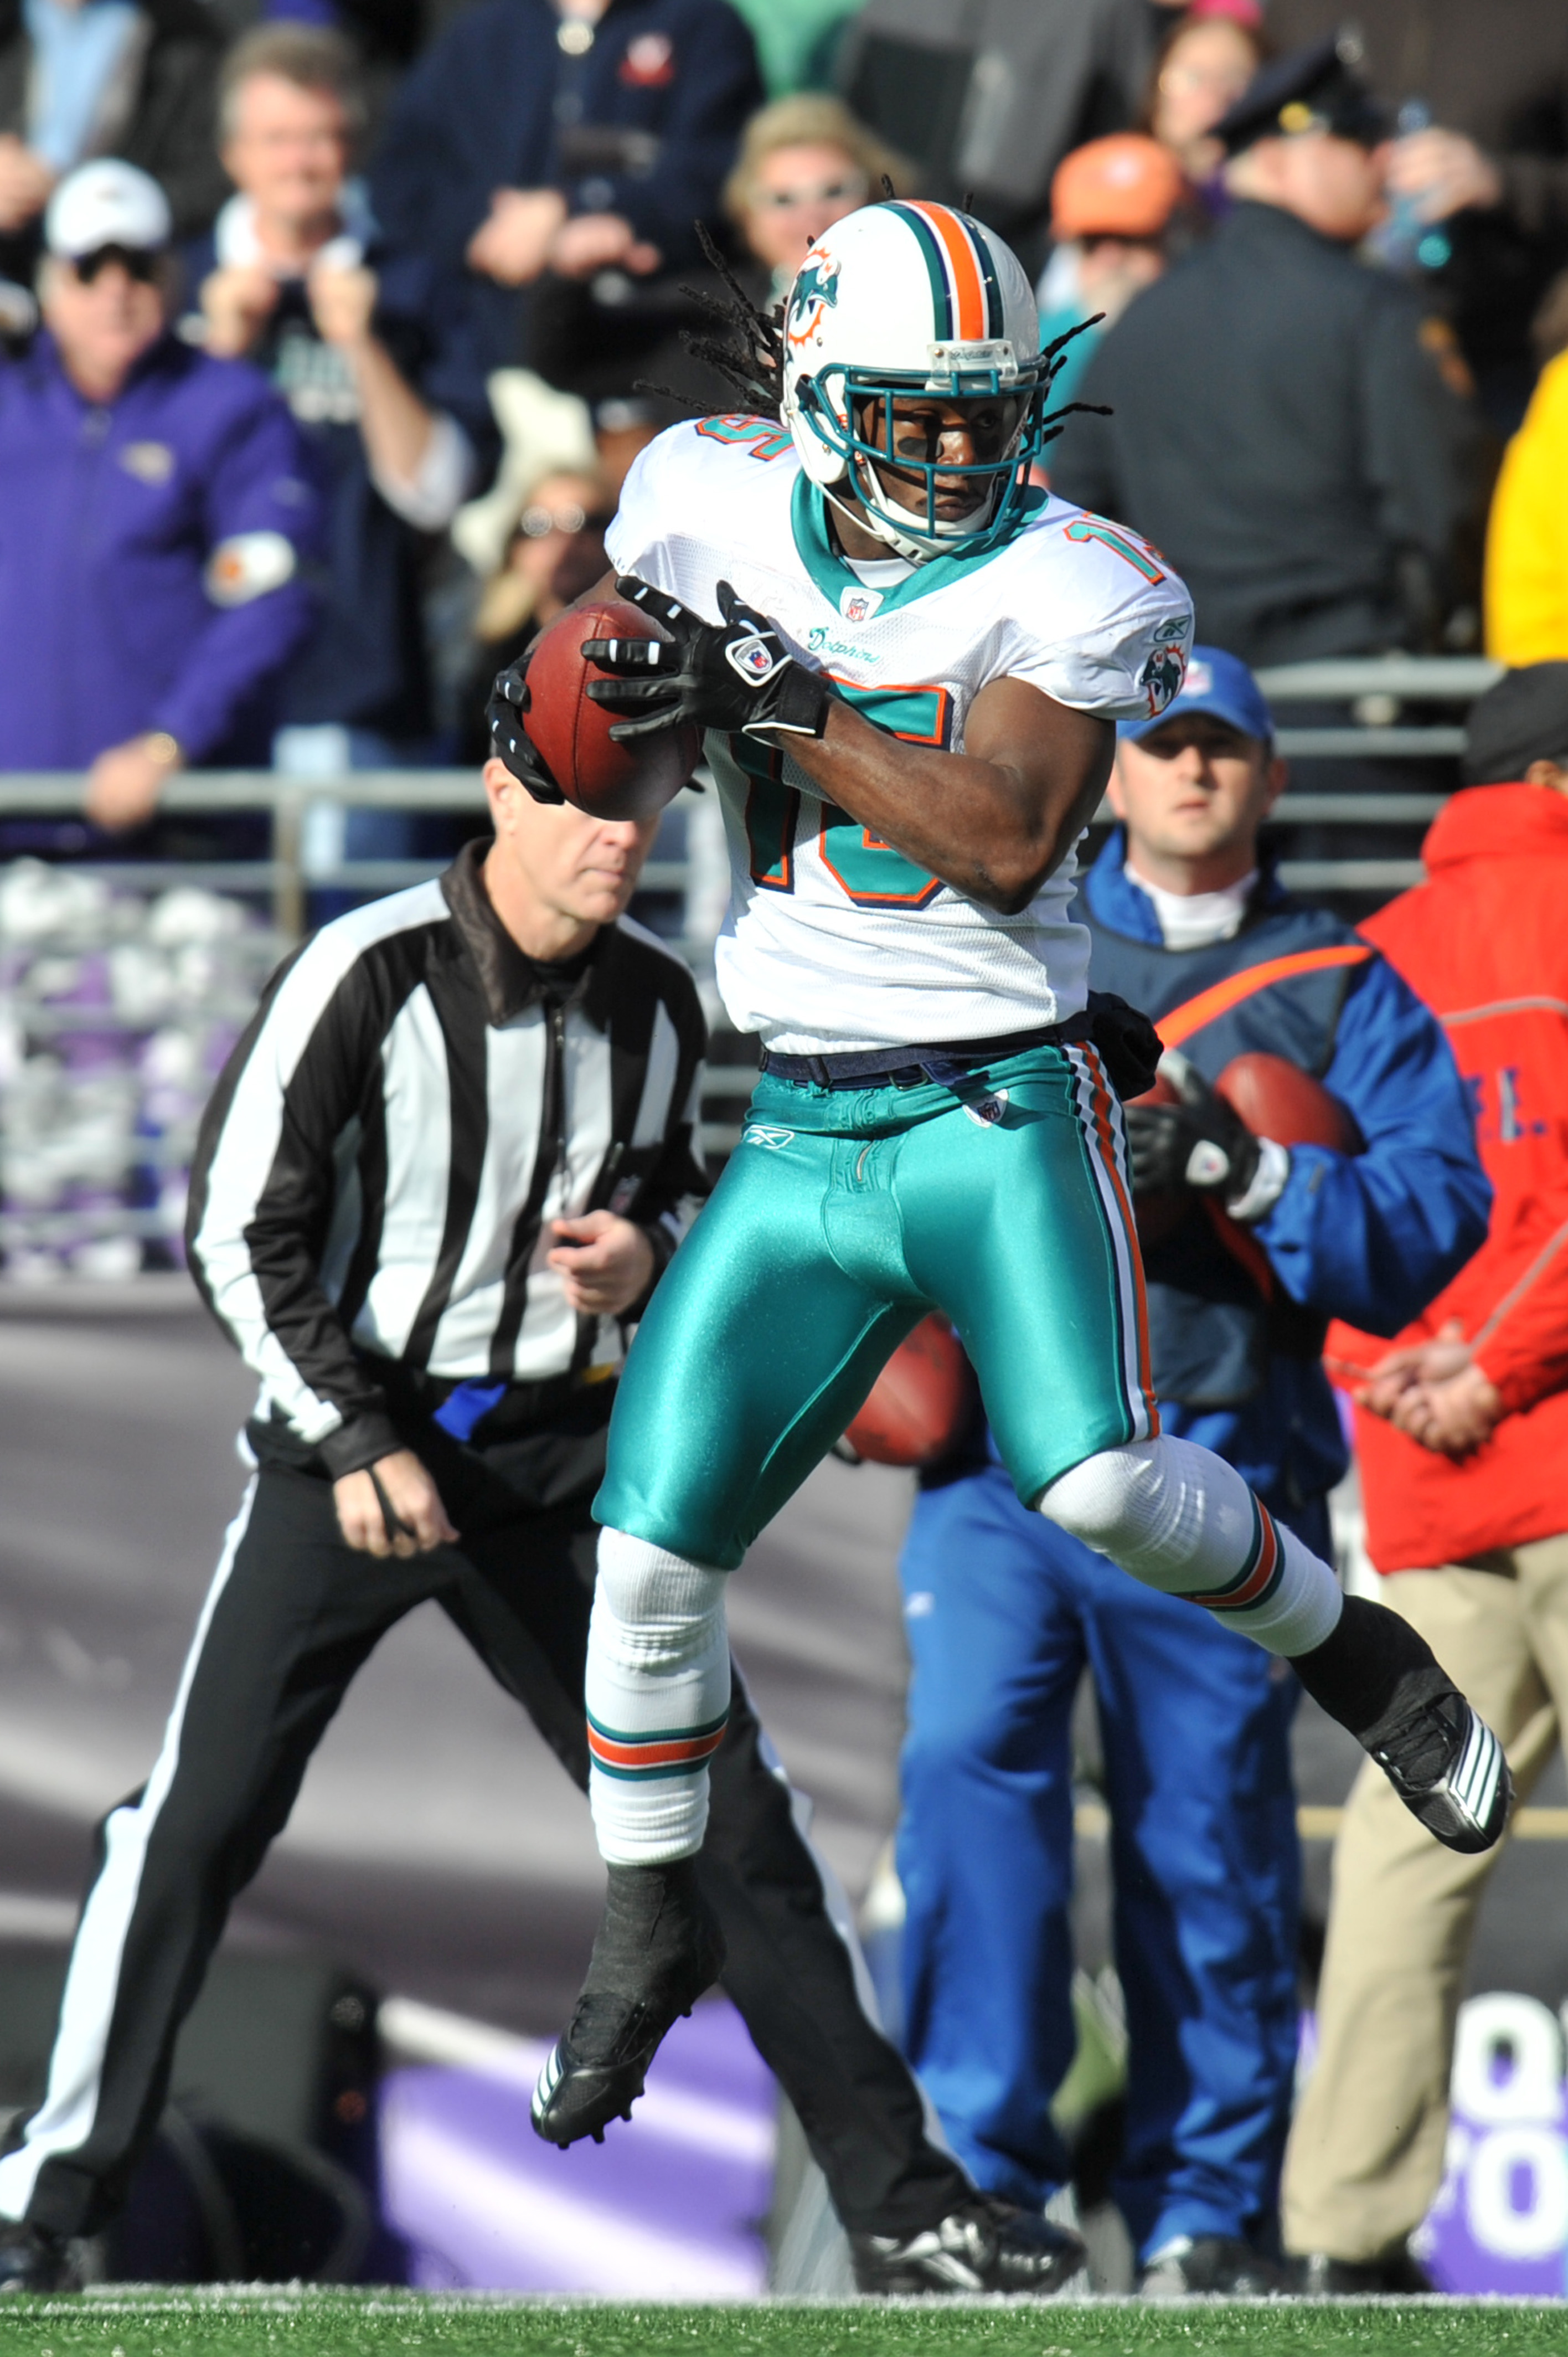 BALTIMORE, MD - NOVEMBER 7:  Davone Bess #15 of the Miami Dolphins makes a catch against the Baltimore Ravens at M&T Bank Stadium on November 7, 2010 in Baltimore, Maryland. The Ravens defeated the Dolphins 26-10. (Photo by Larry French/Getty Images)